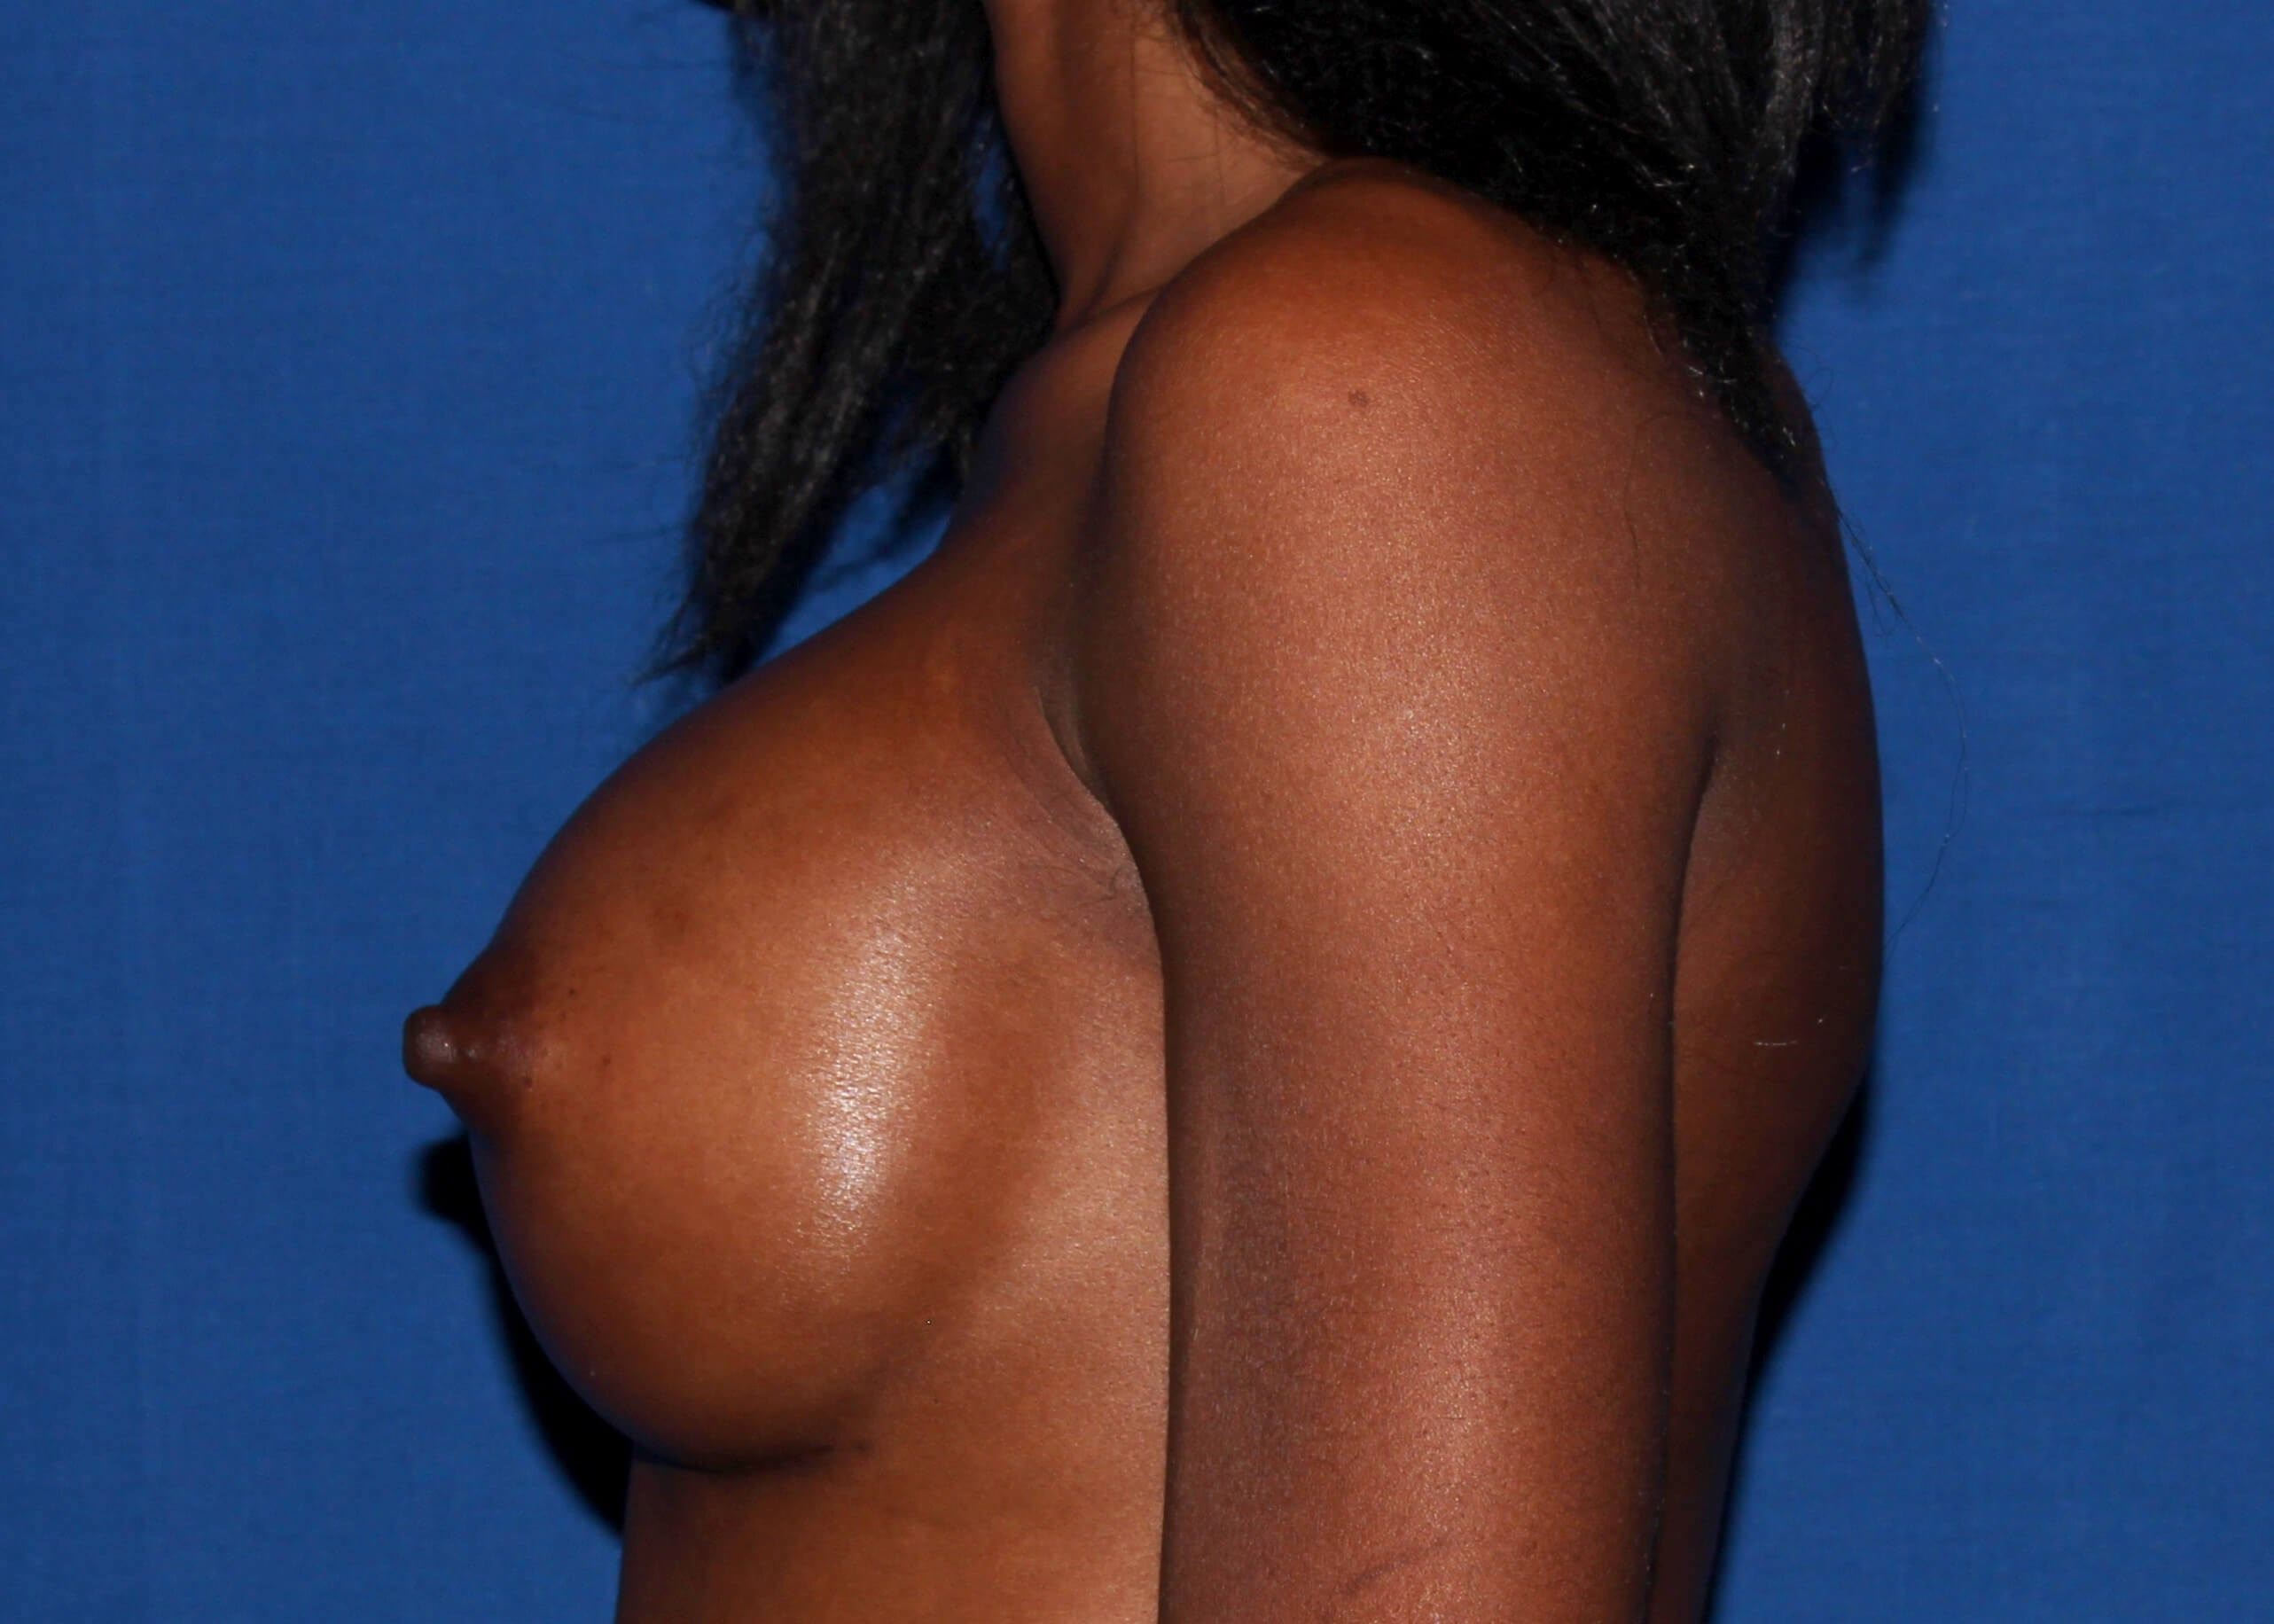 Breast Augmentation After Left View - Left View